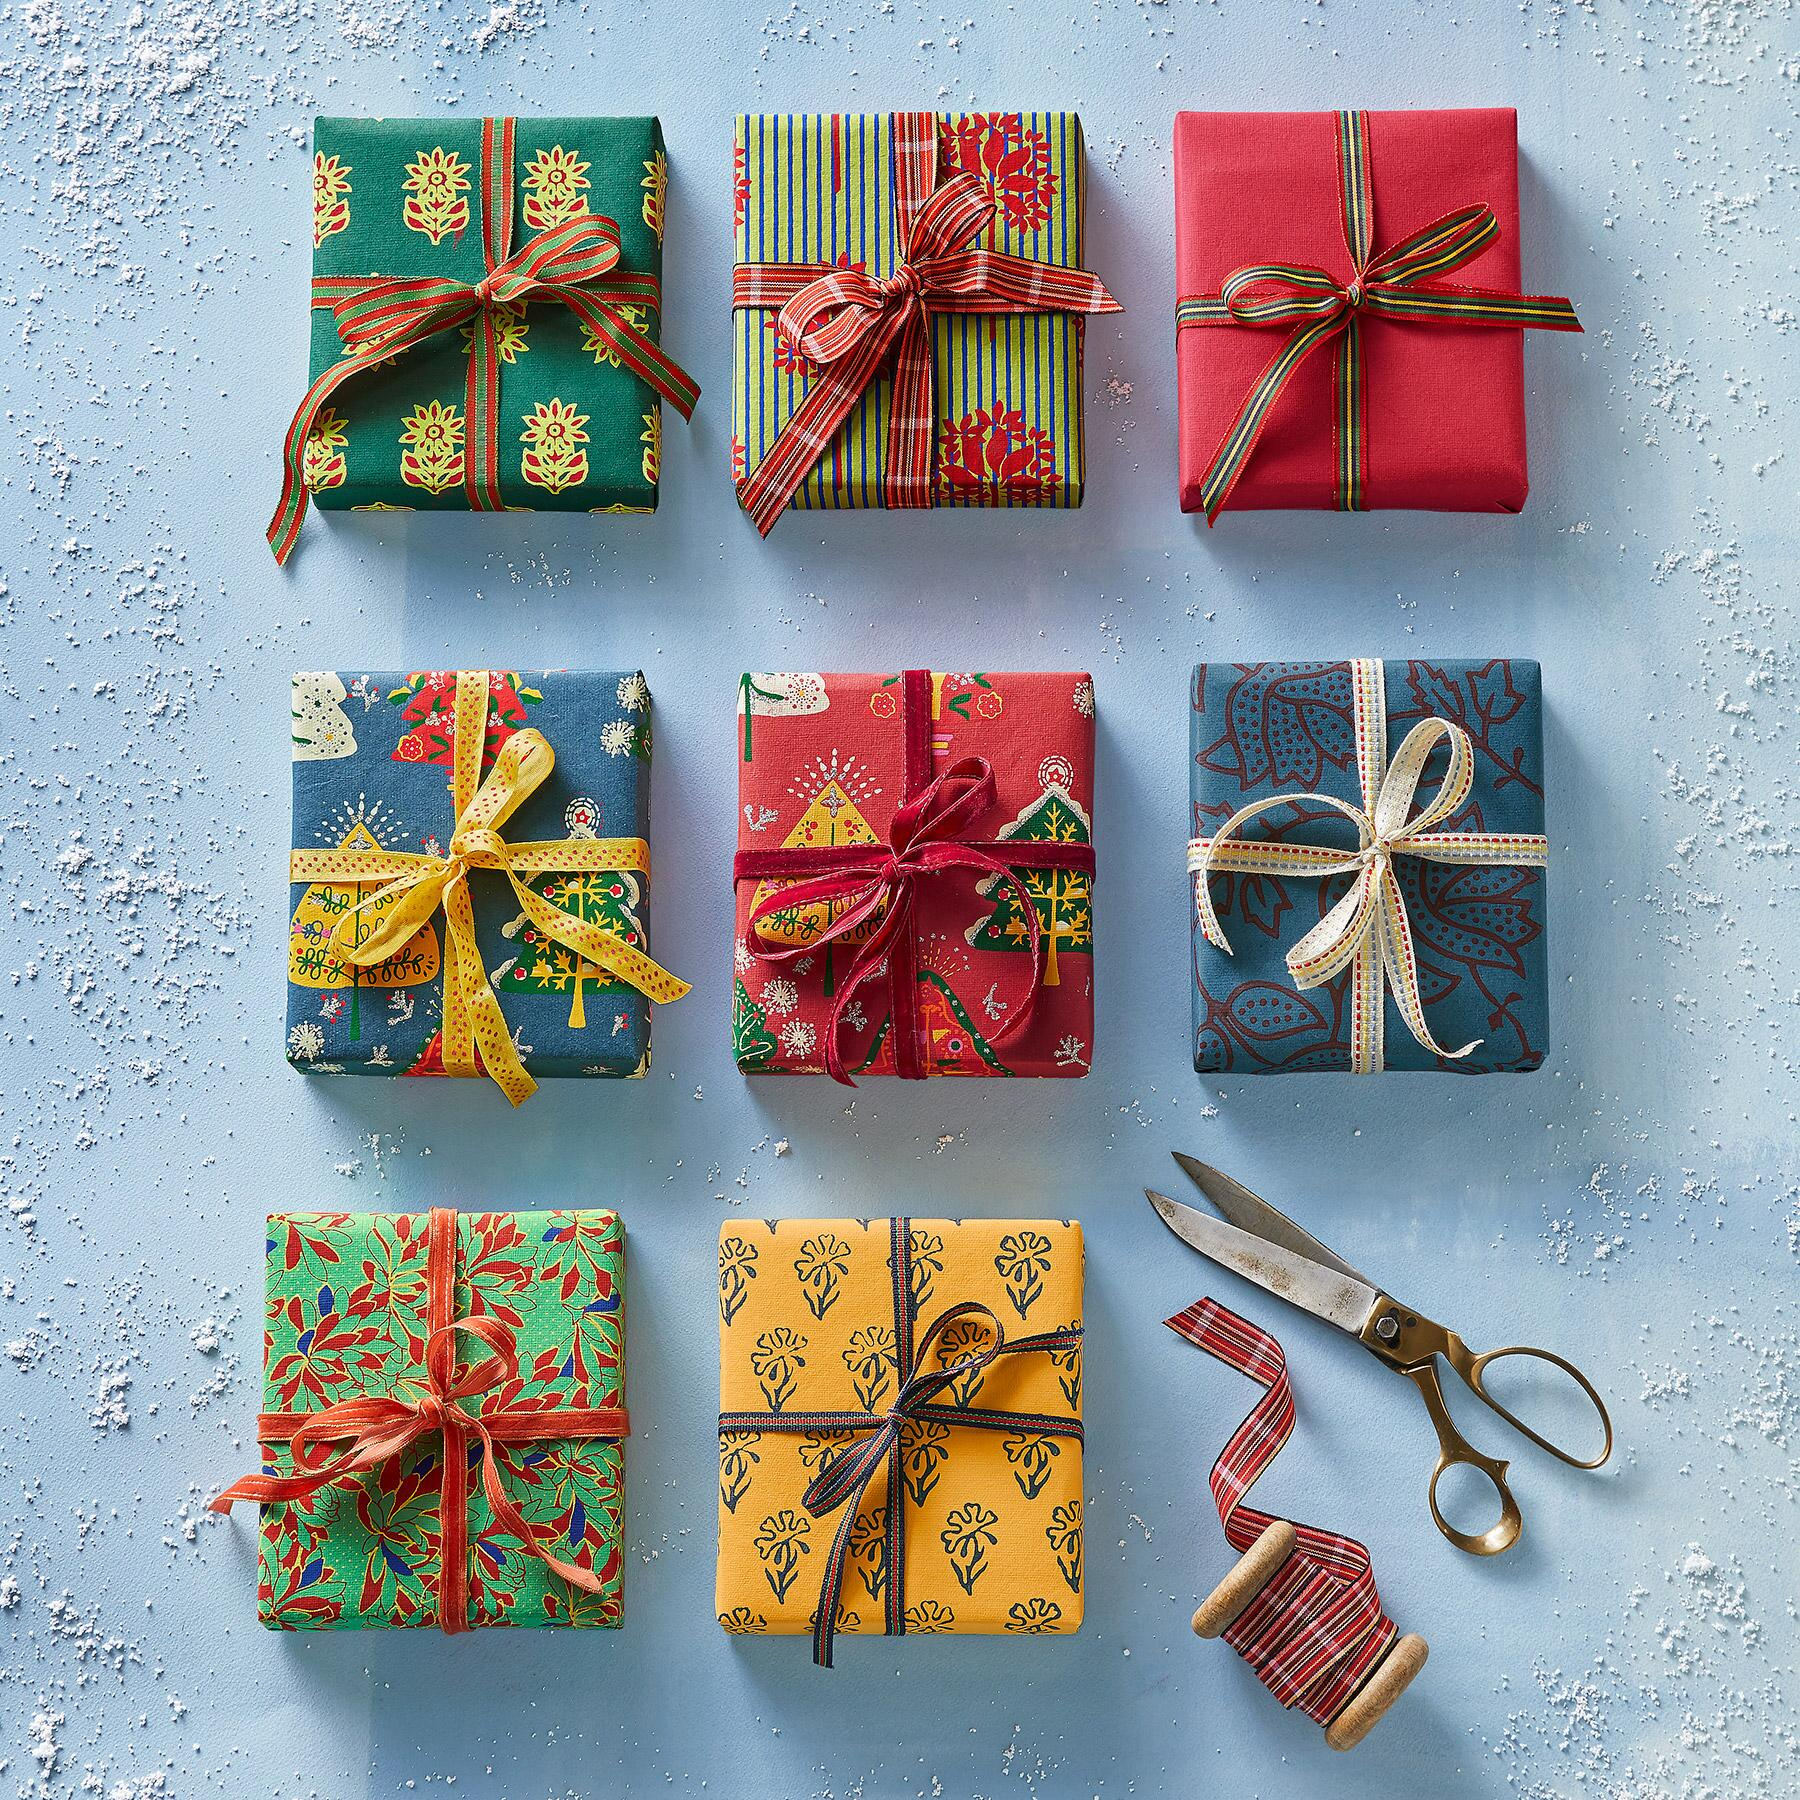 FESTIVE MIX WRAPPING PAPER, SET OF 8: View 2